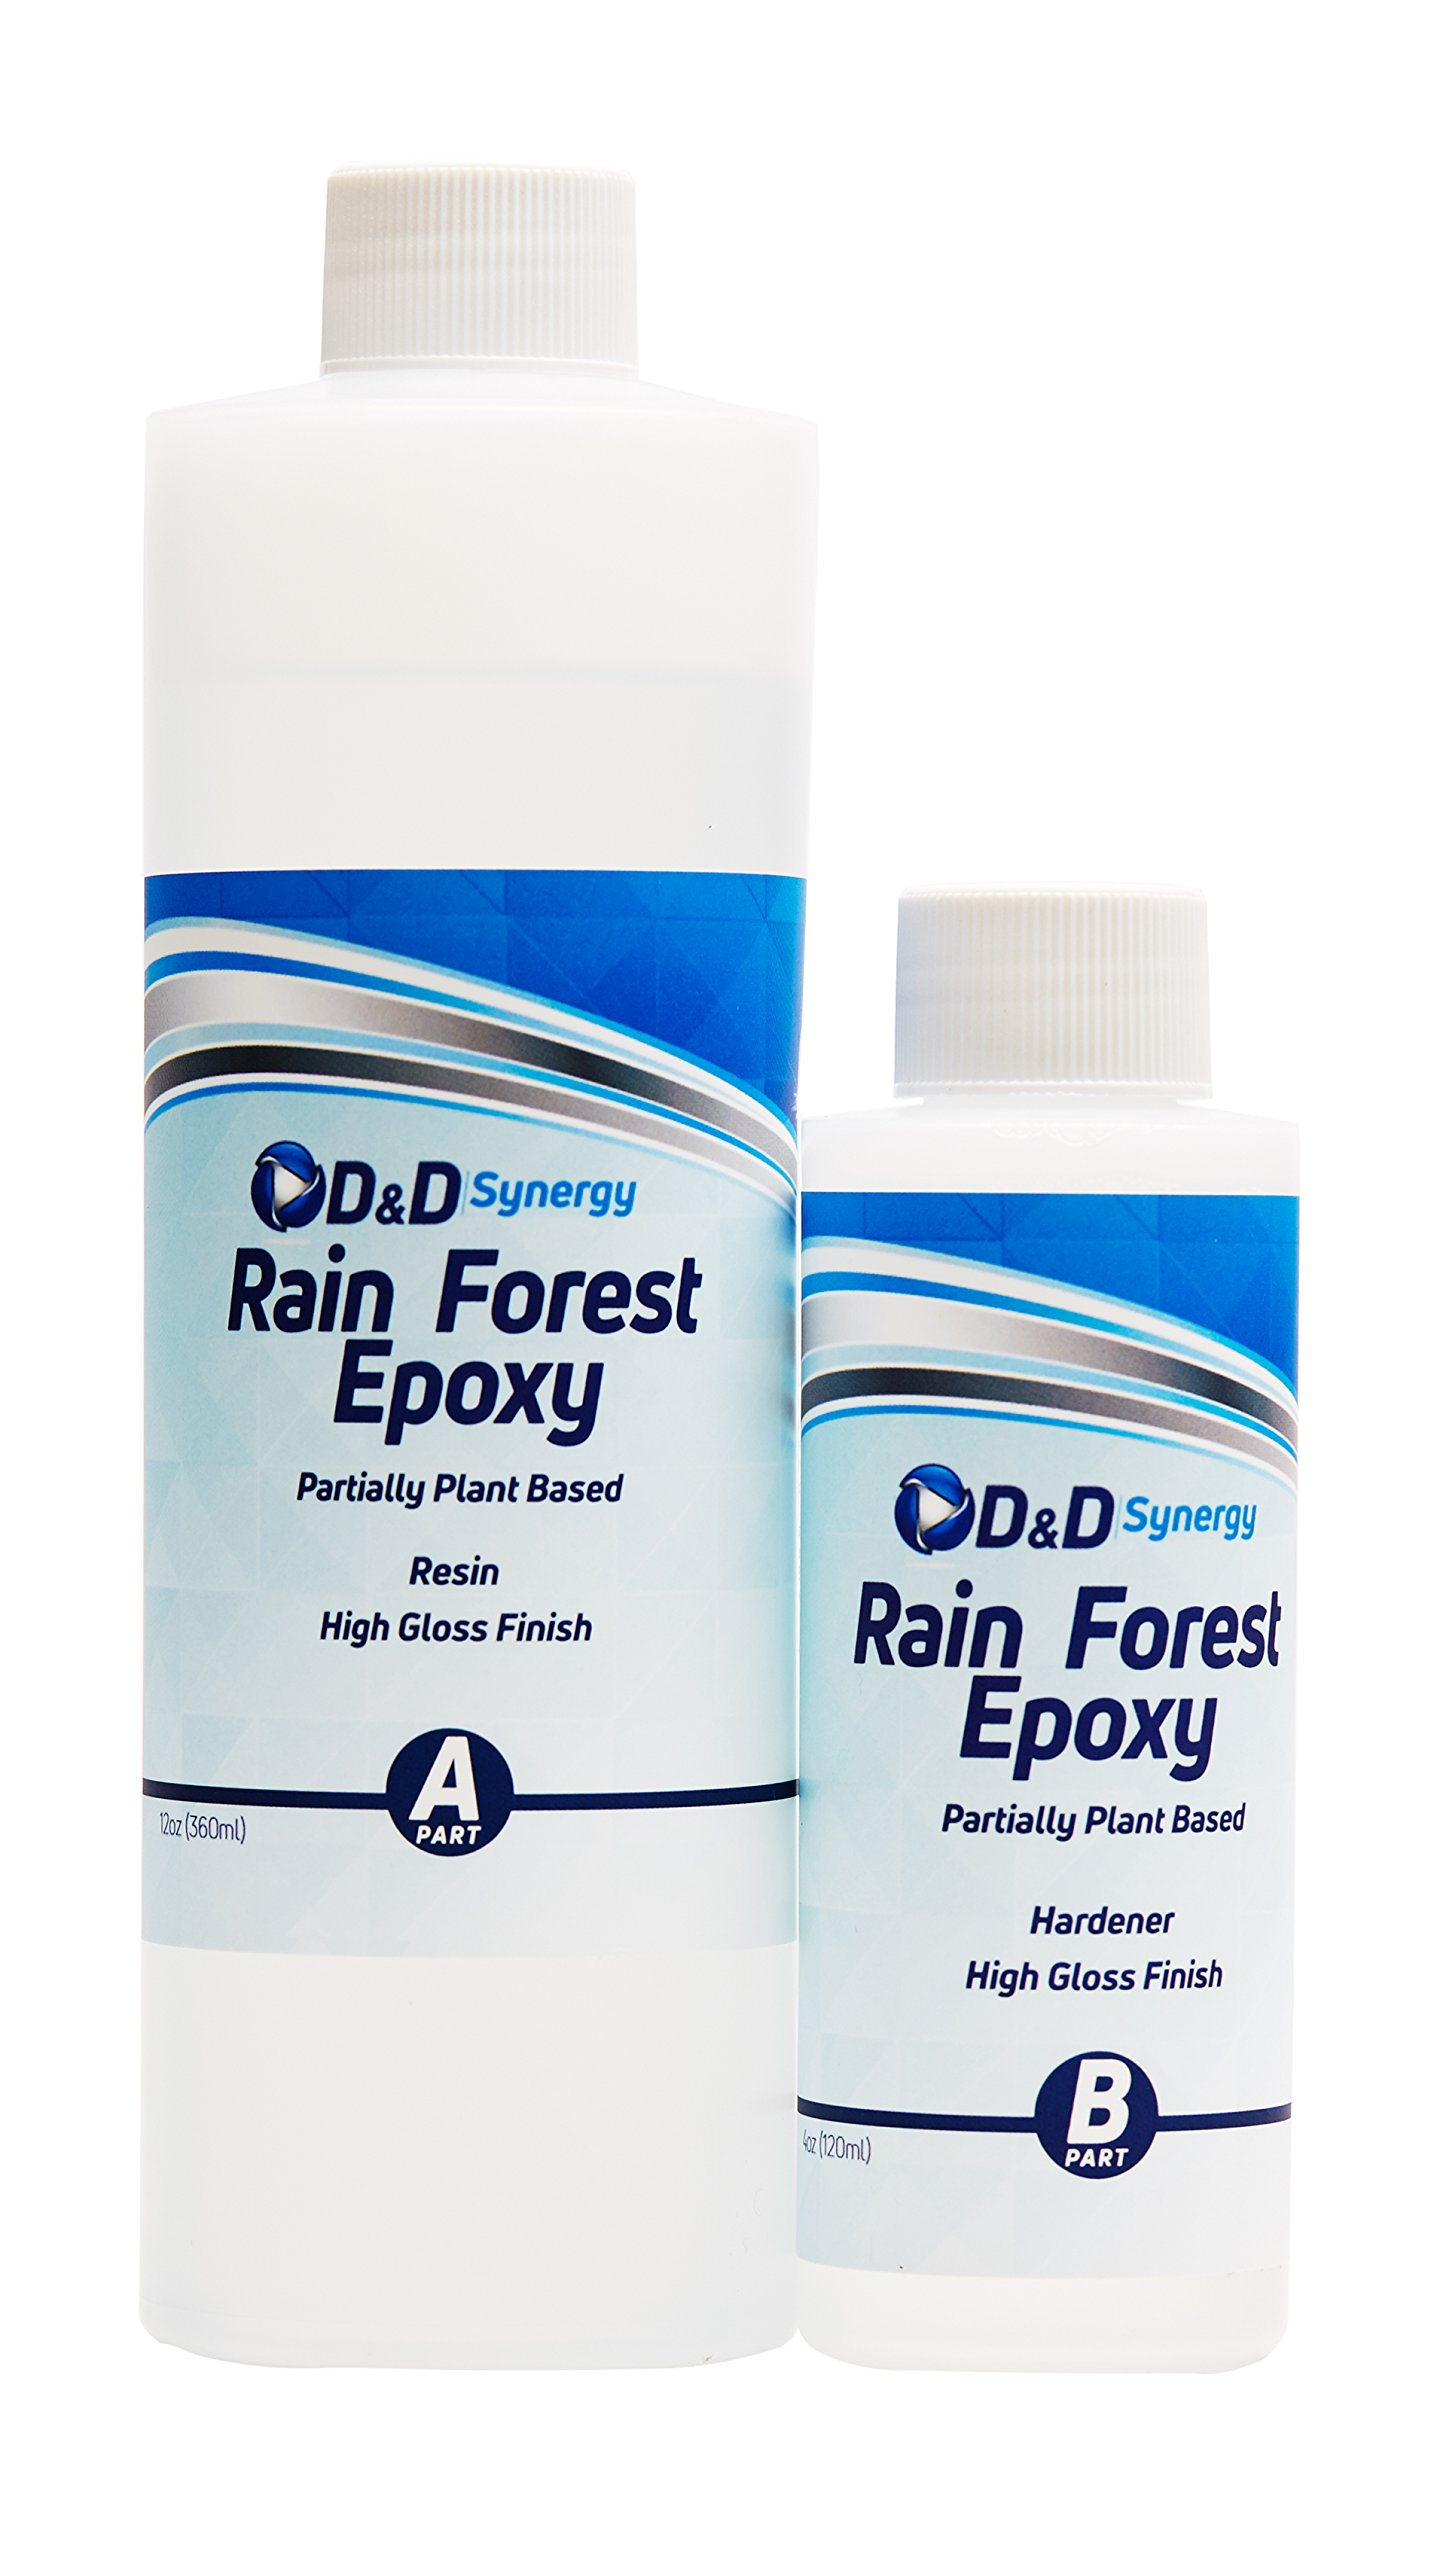 Rain Forest Epoxy - Commercial Grade Crystal Clear Epoxy Resin for Bar Tops & Tables - 16 oz Kit.